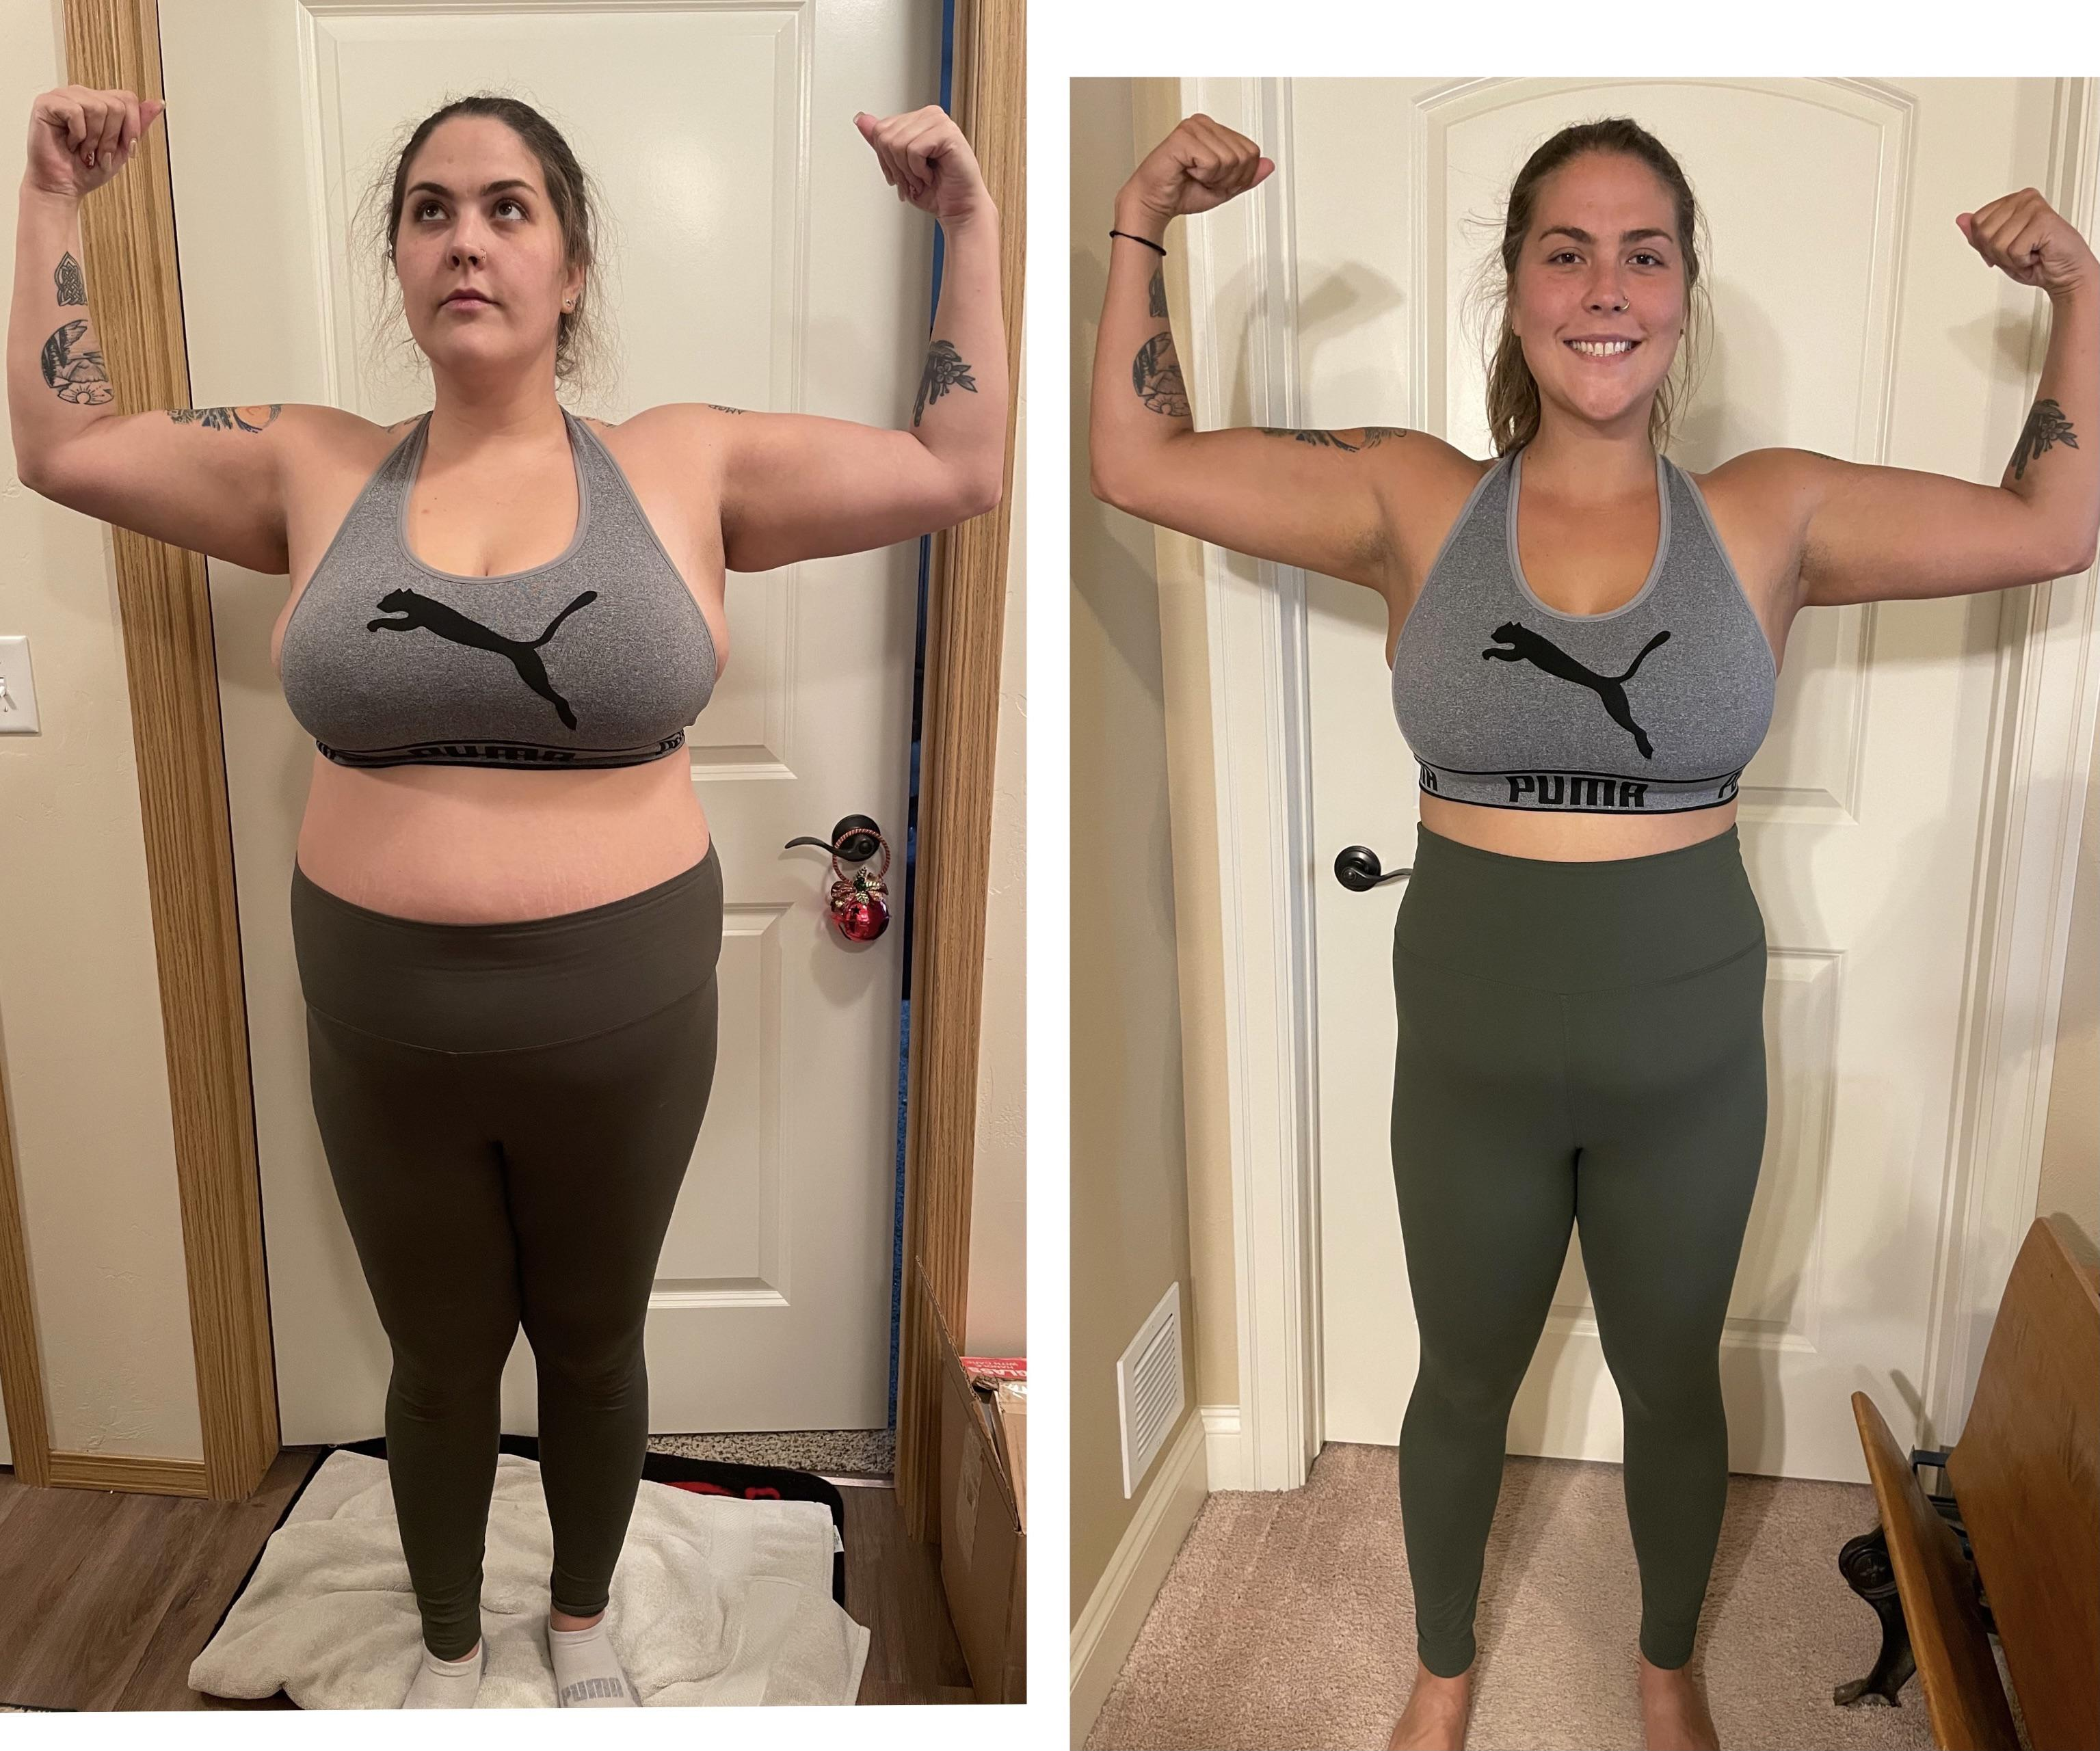 5 foot 8 Female Before and After 50 lbs Weight Loss 233 lbs to 183 lbs